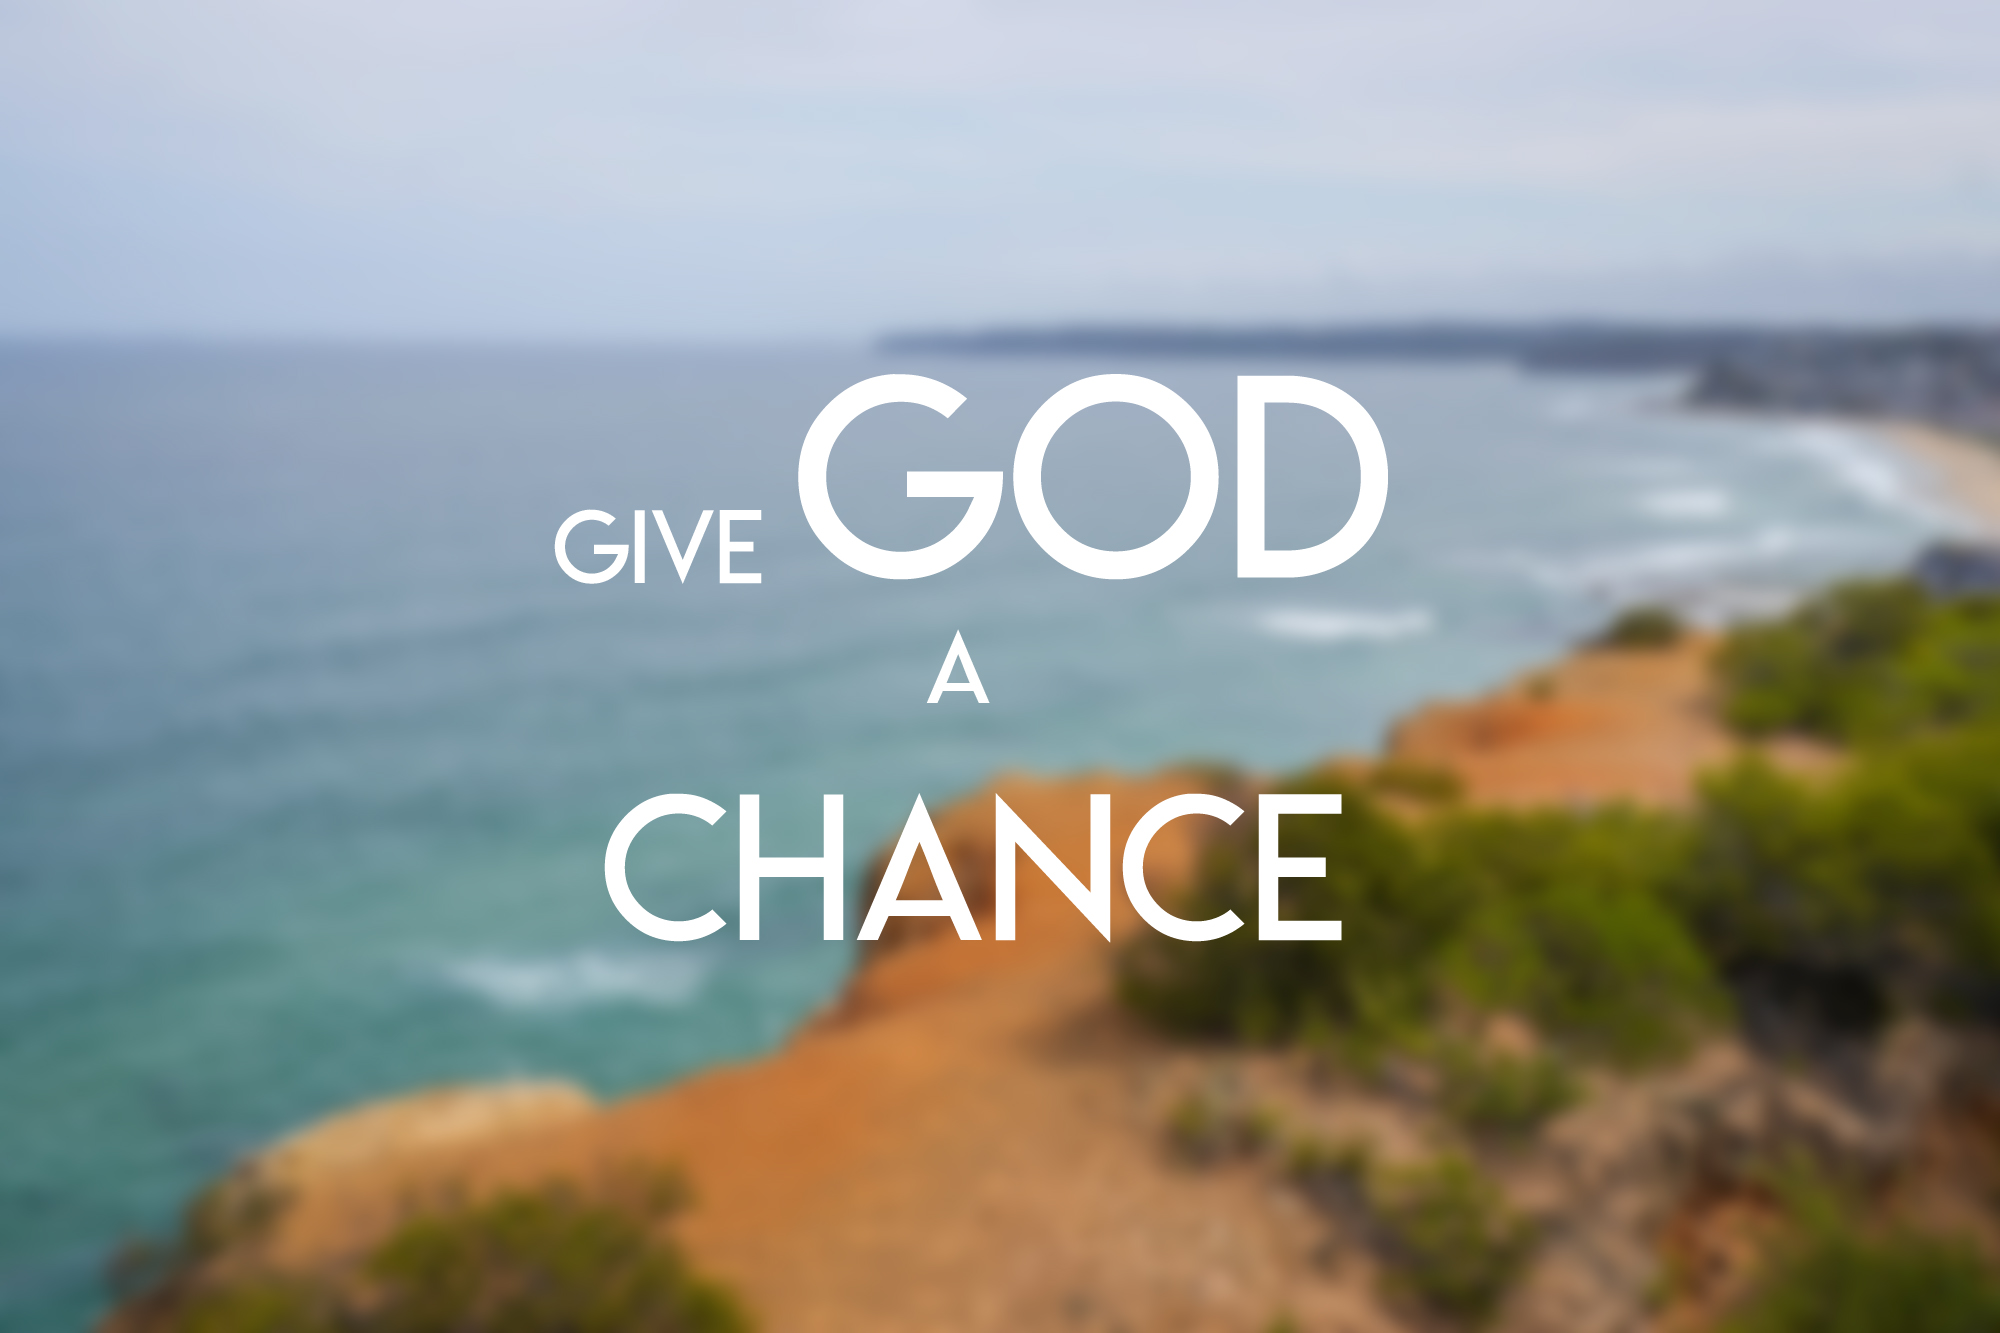 Why give God a chance